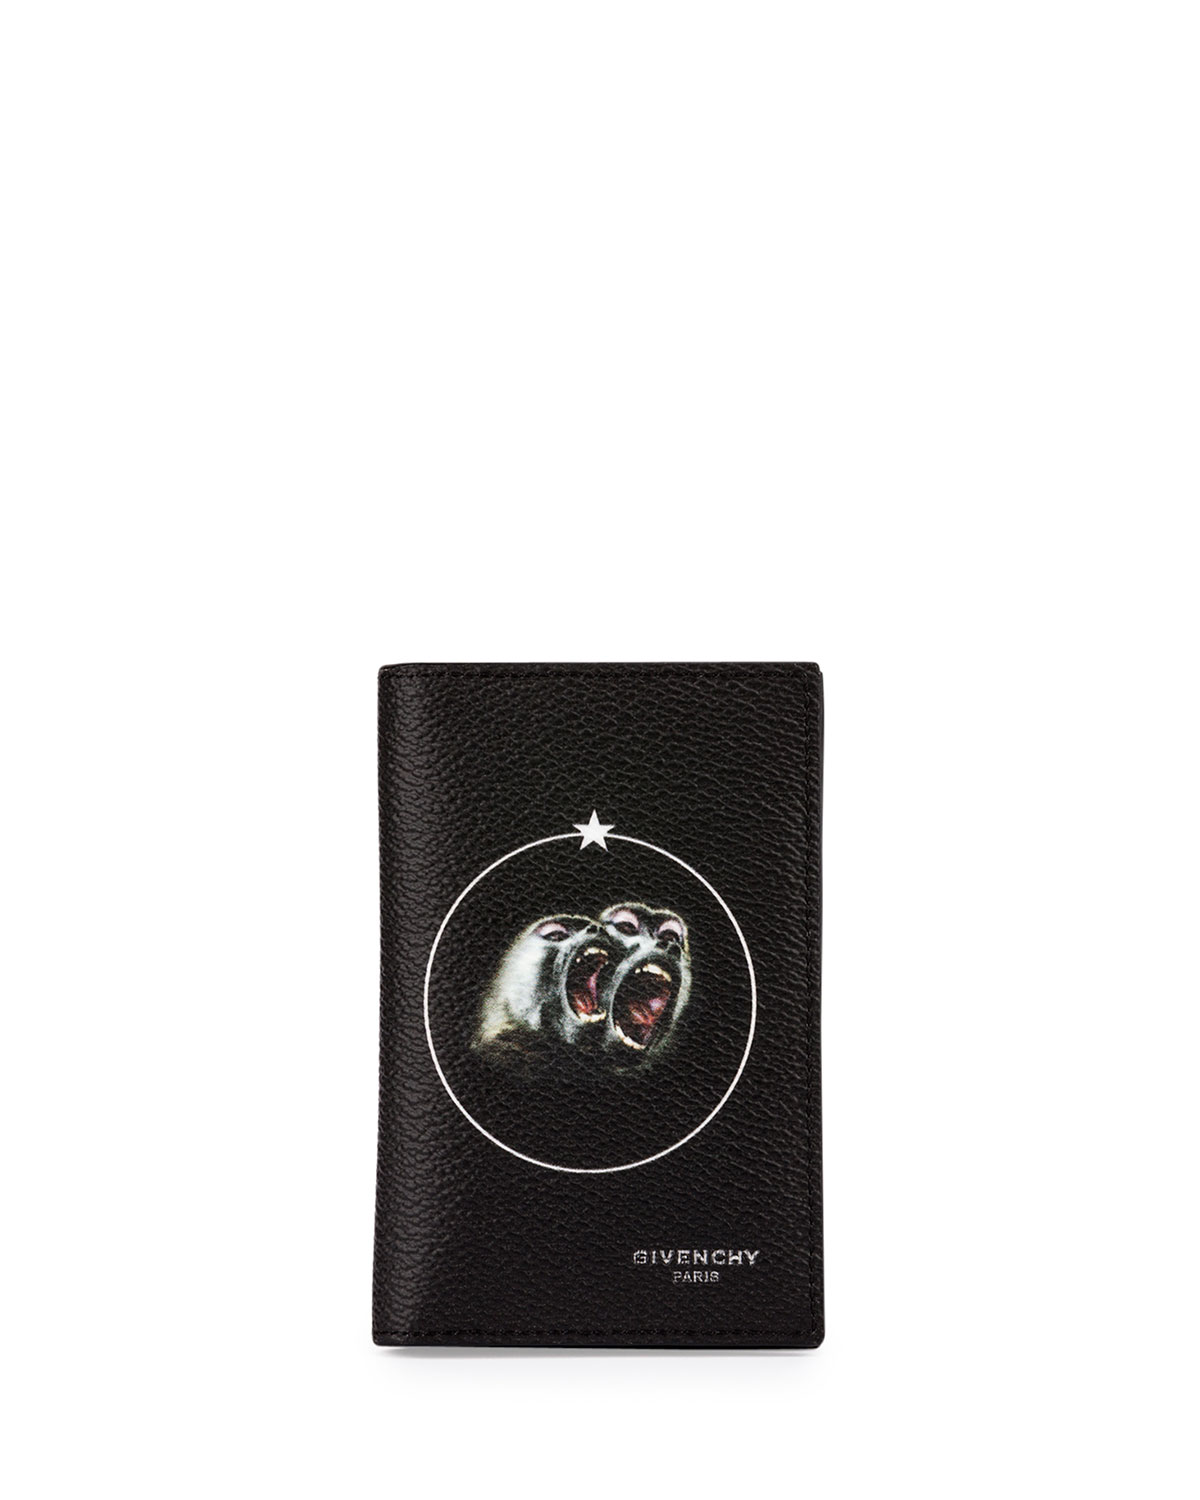 908f6378ab91 Givenchy Monkey Brothers Card Case, Black | Neiman Marcus